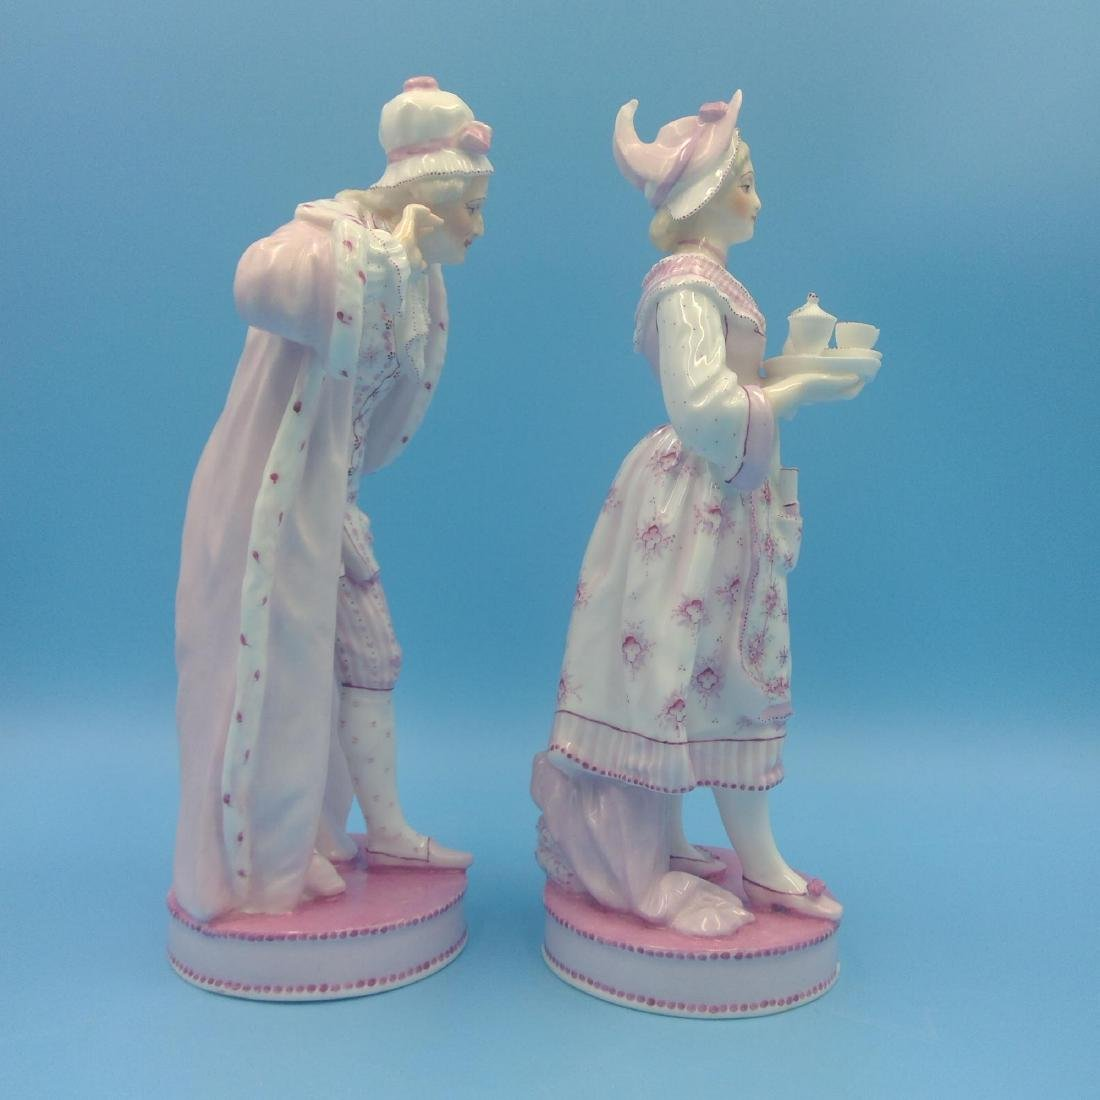 PAIR OF 19thC FRENCH VION & BAURY FIGURINES - 4